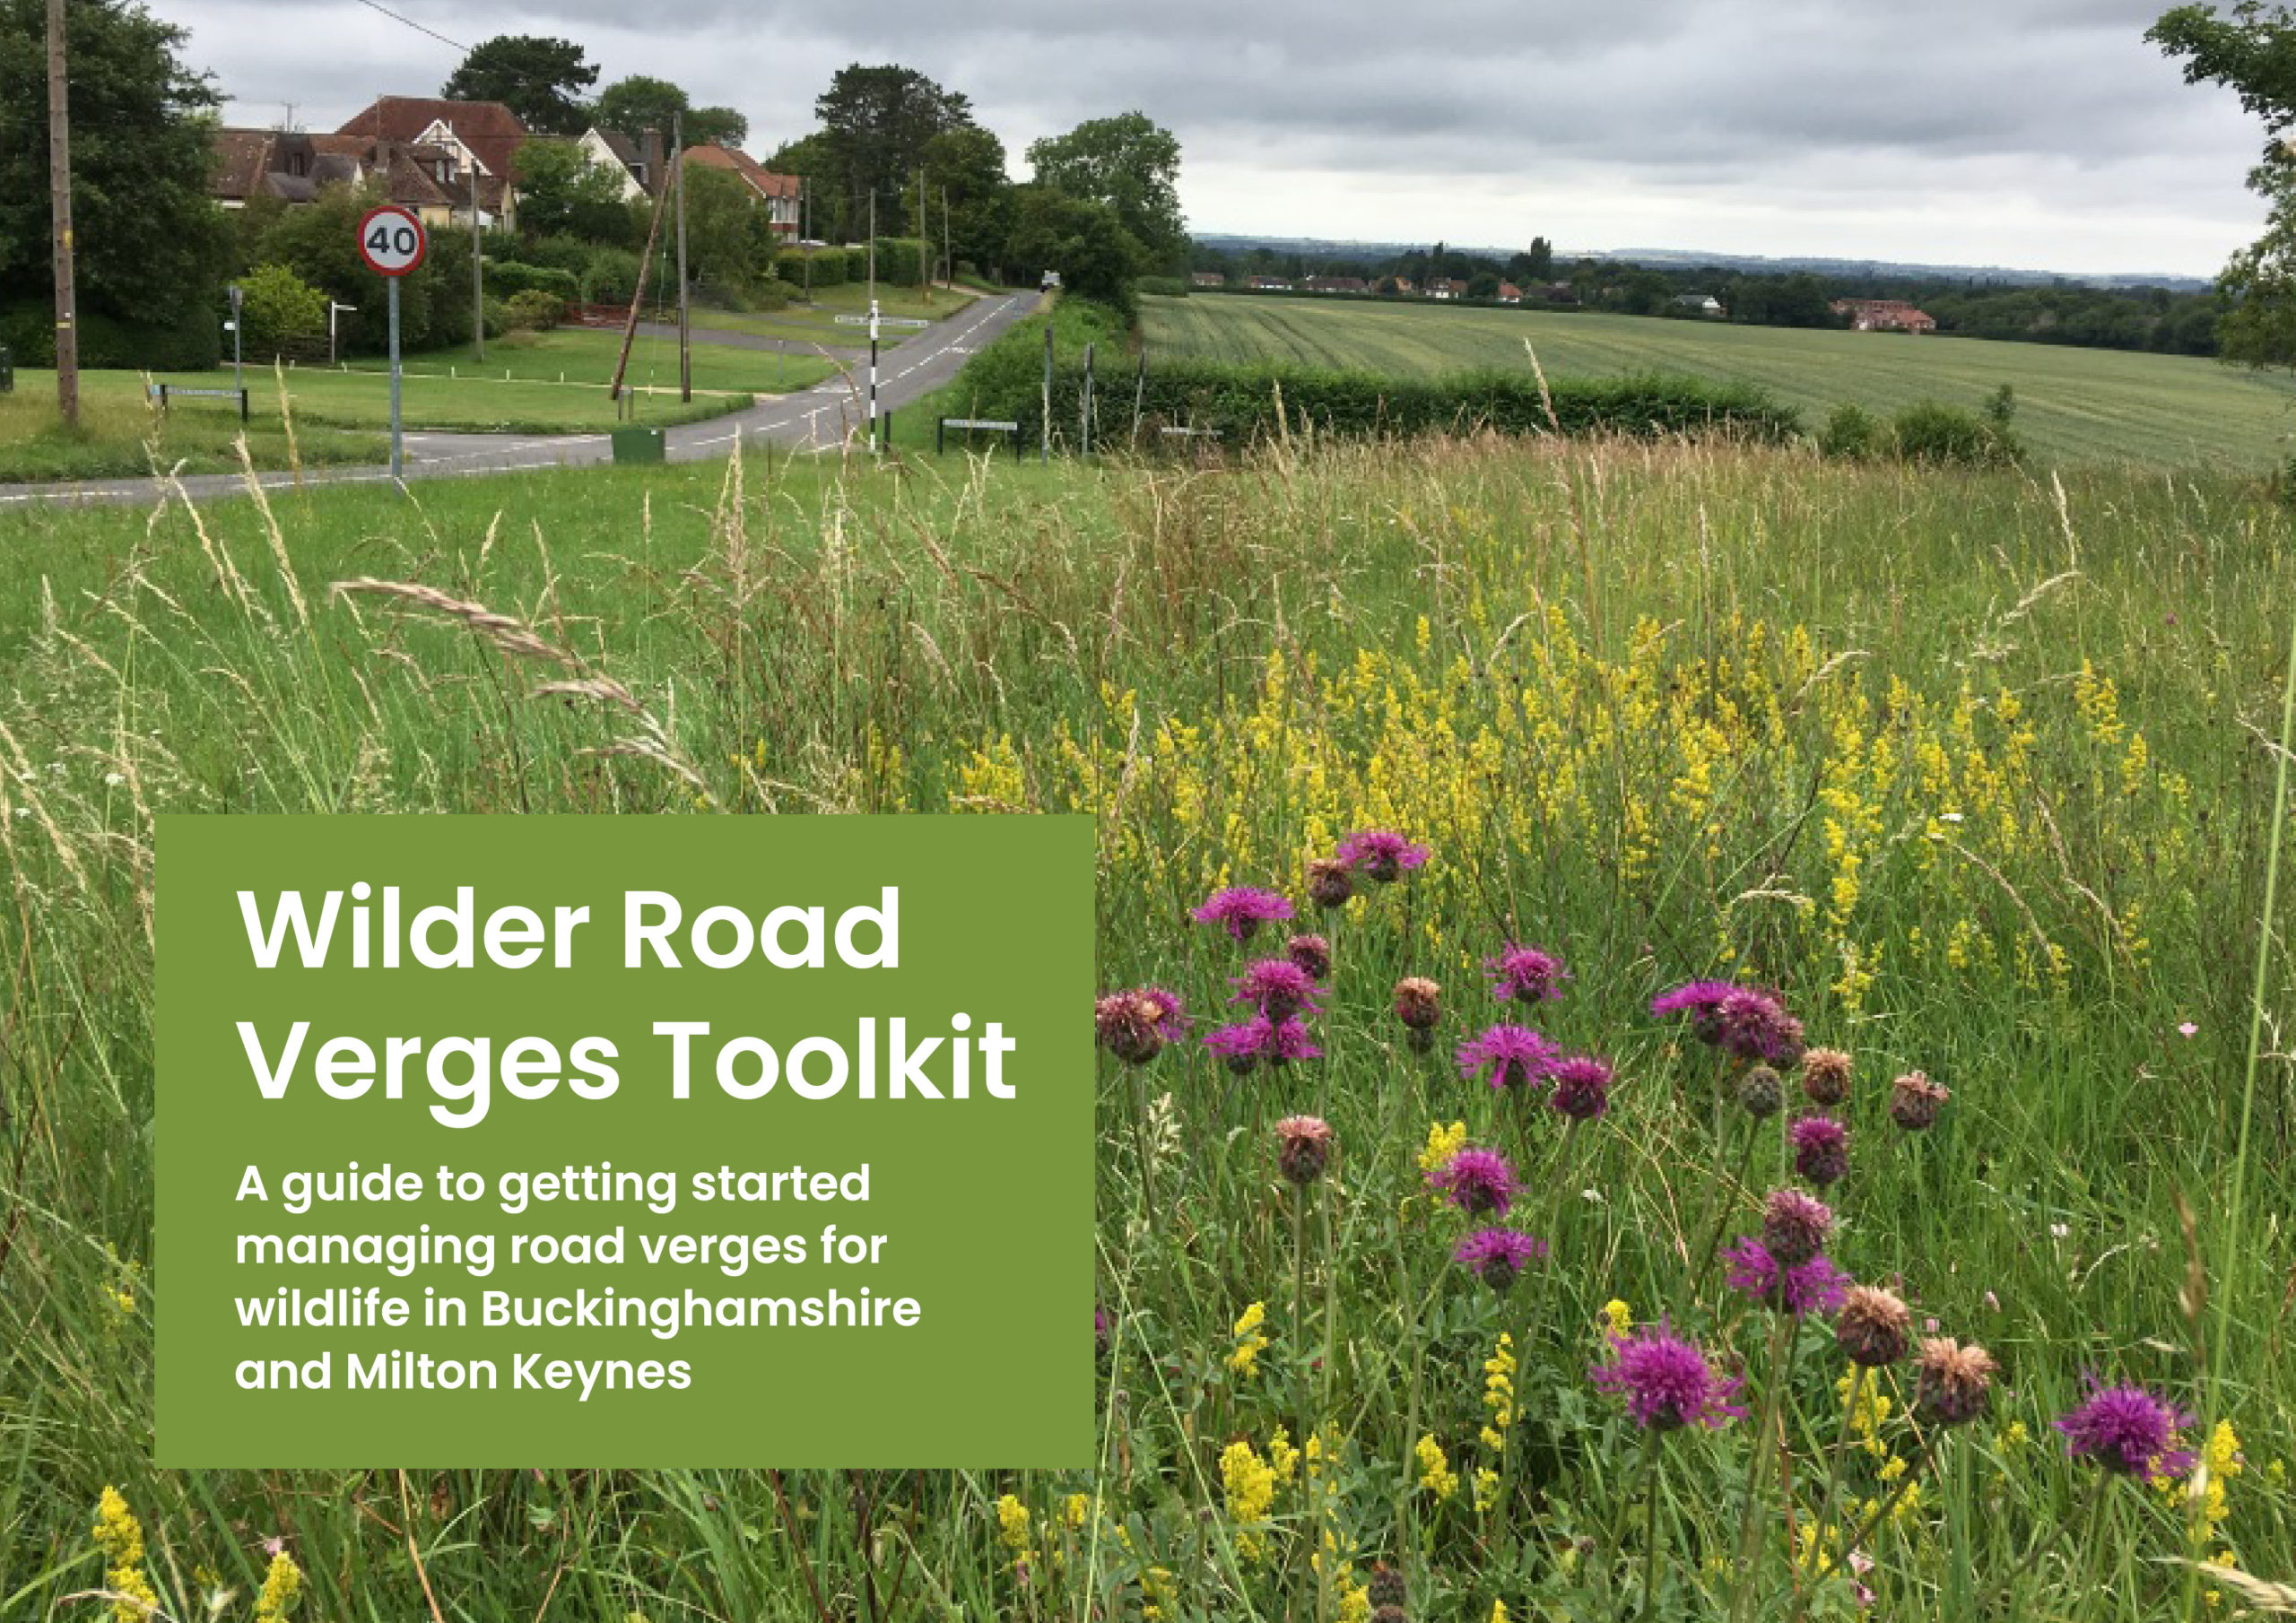 Wilder Road Verges Toolkit cover